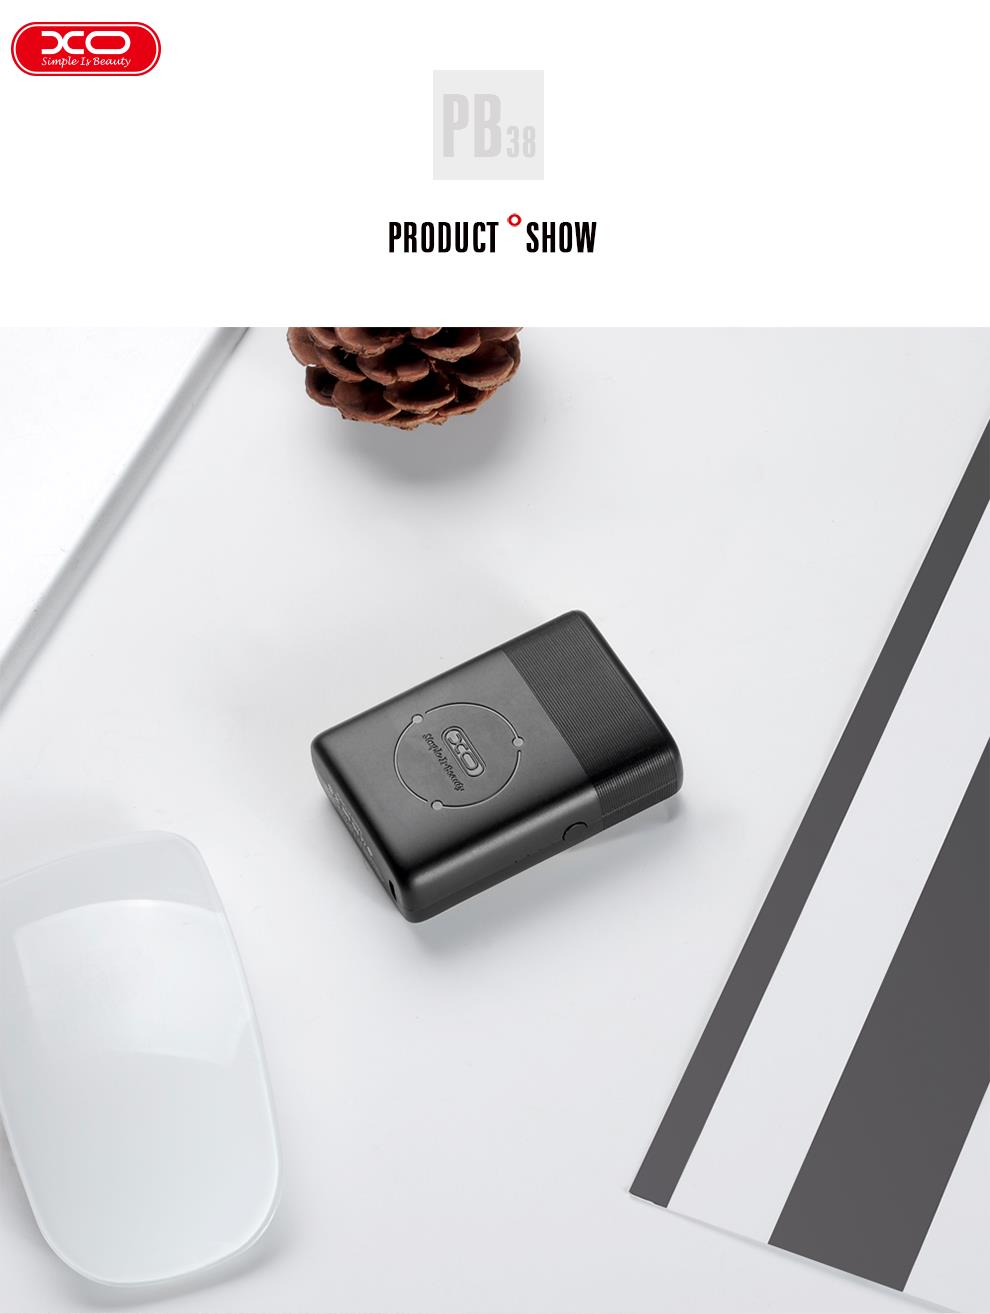 XO MINI PORTABLE POWER BANK 5000 mAH SUITABLE TO PUT IN HANDBAG  & POCKET